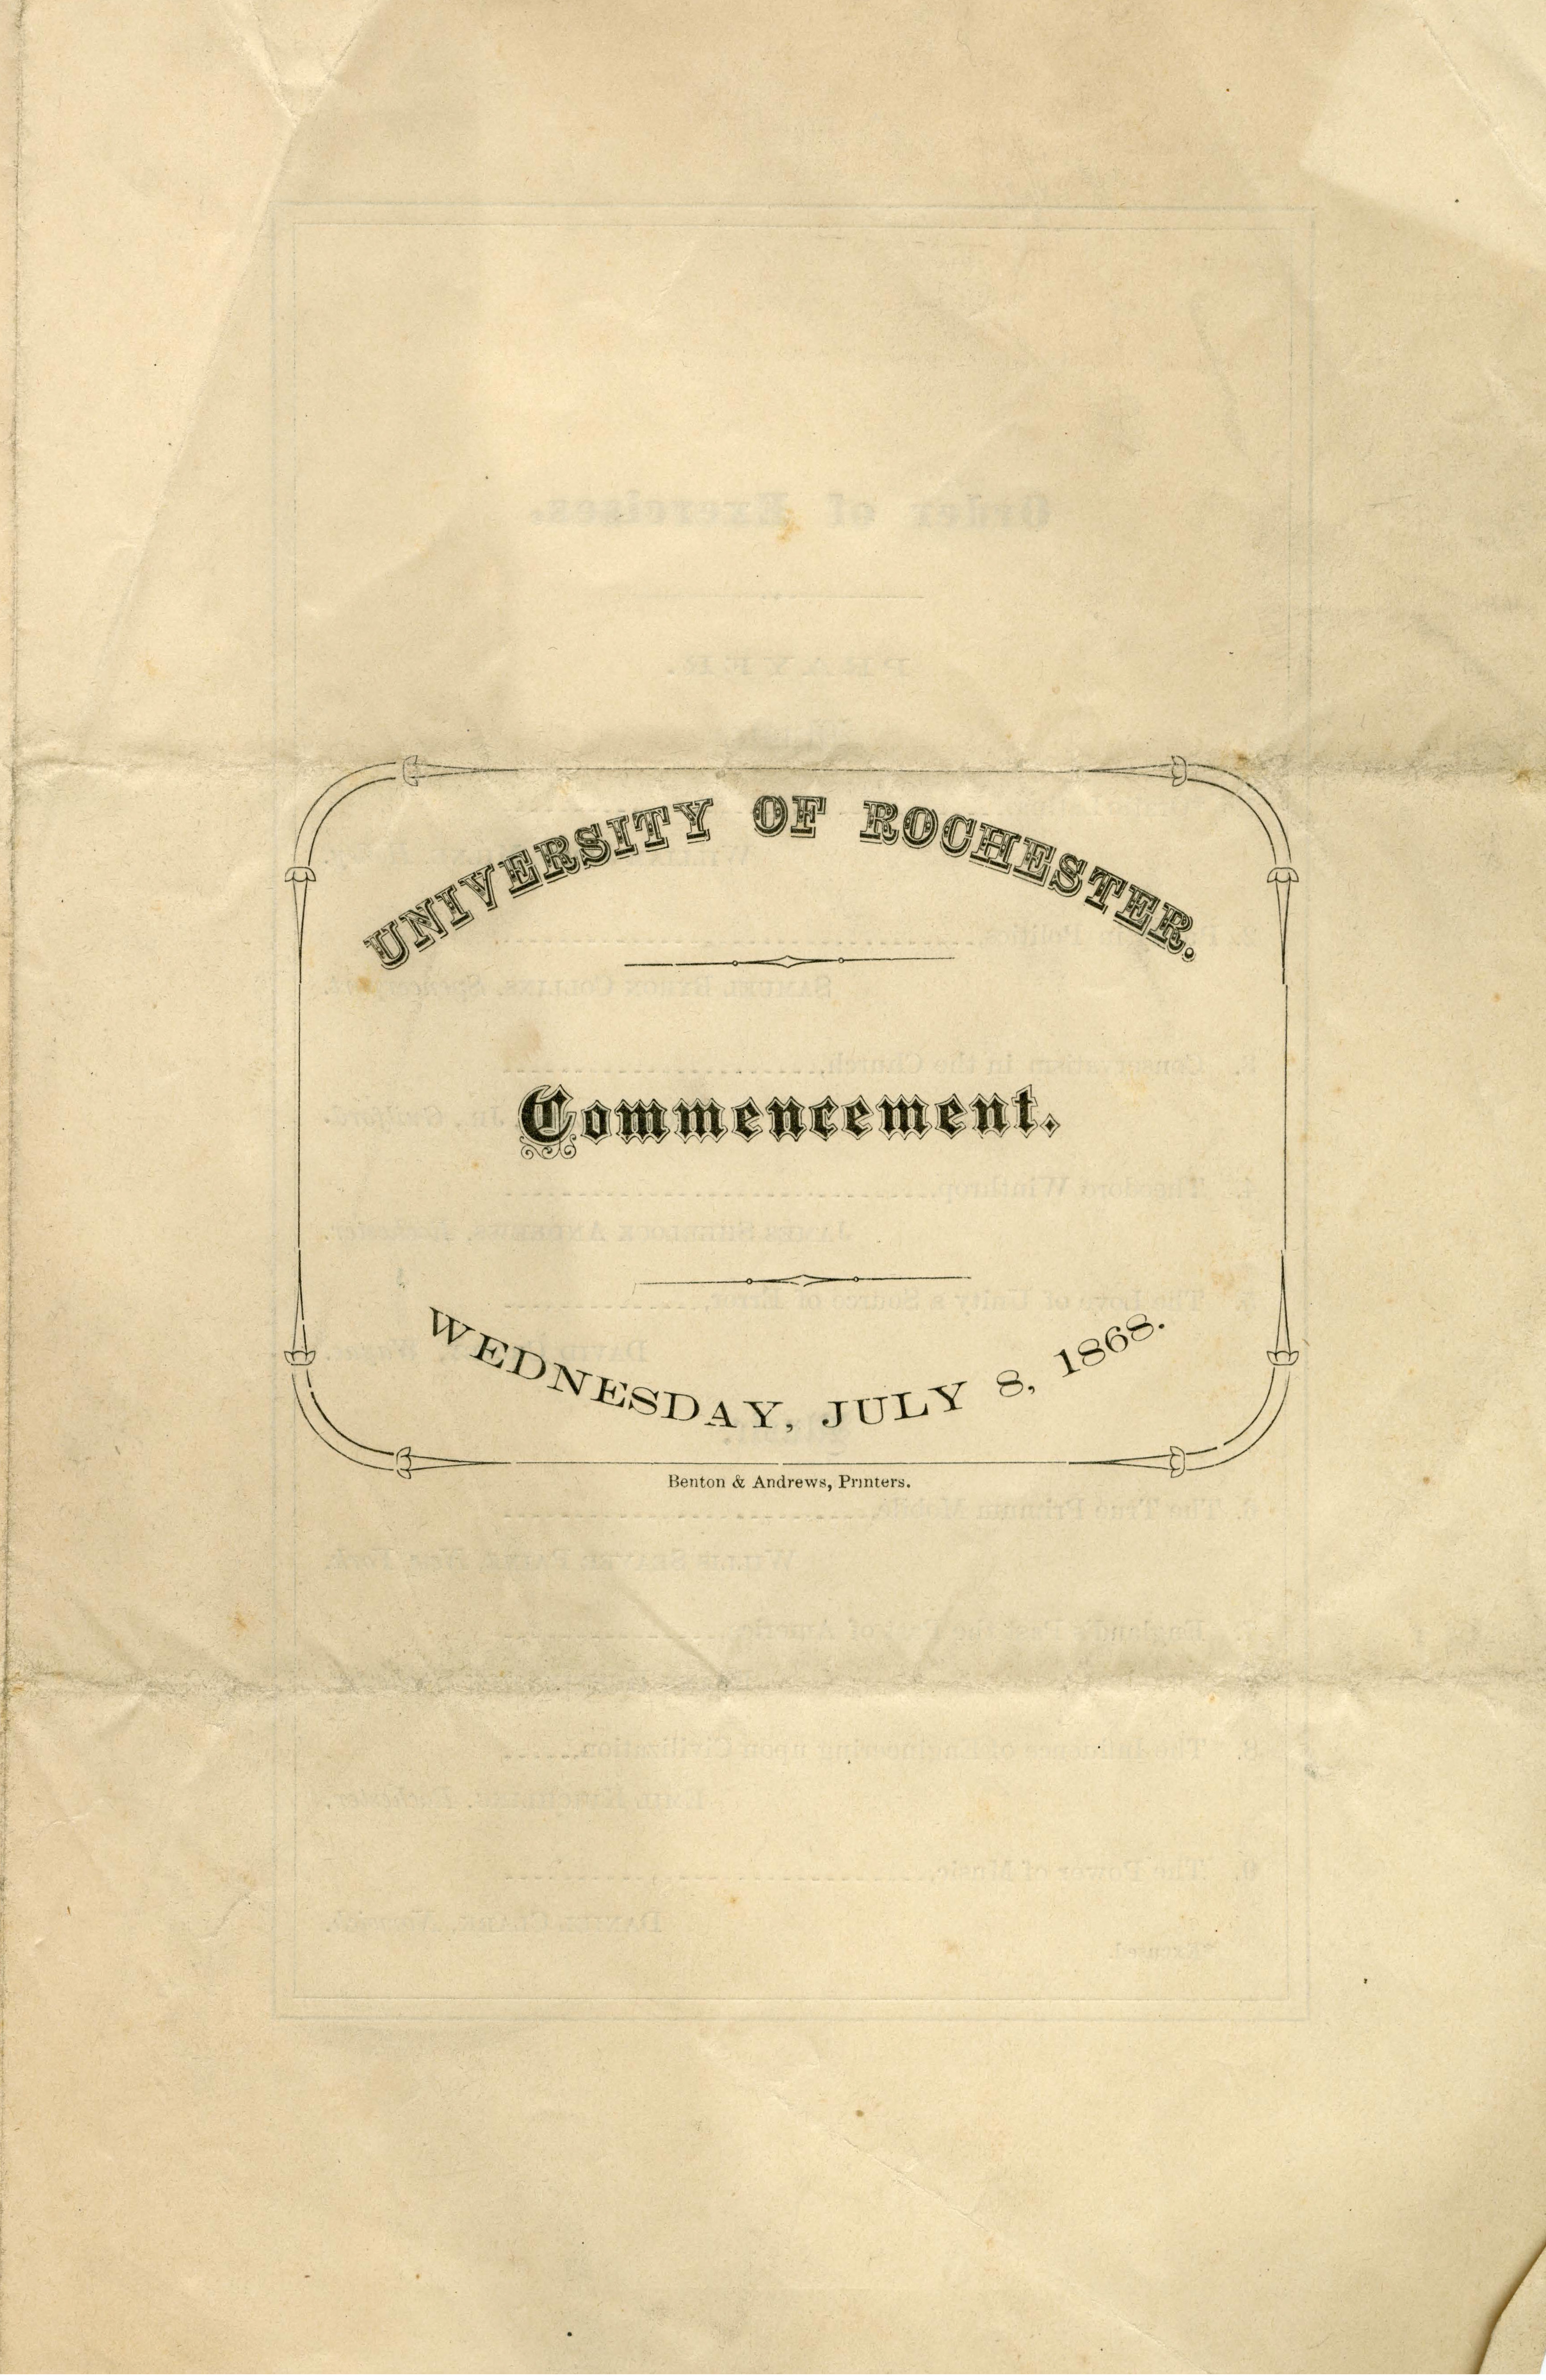 Commencement program (July 8, 1868)